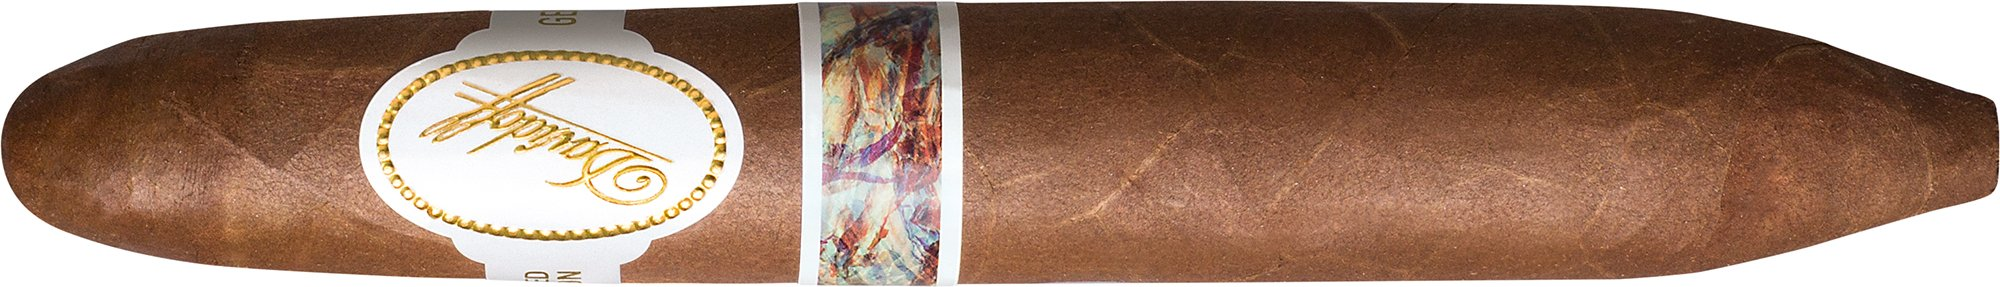 Davidoff Limited Editions ART Edition Forms of Freedom Nr. 1